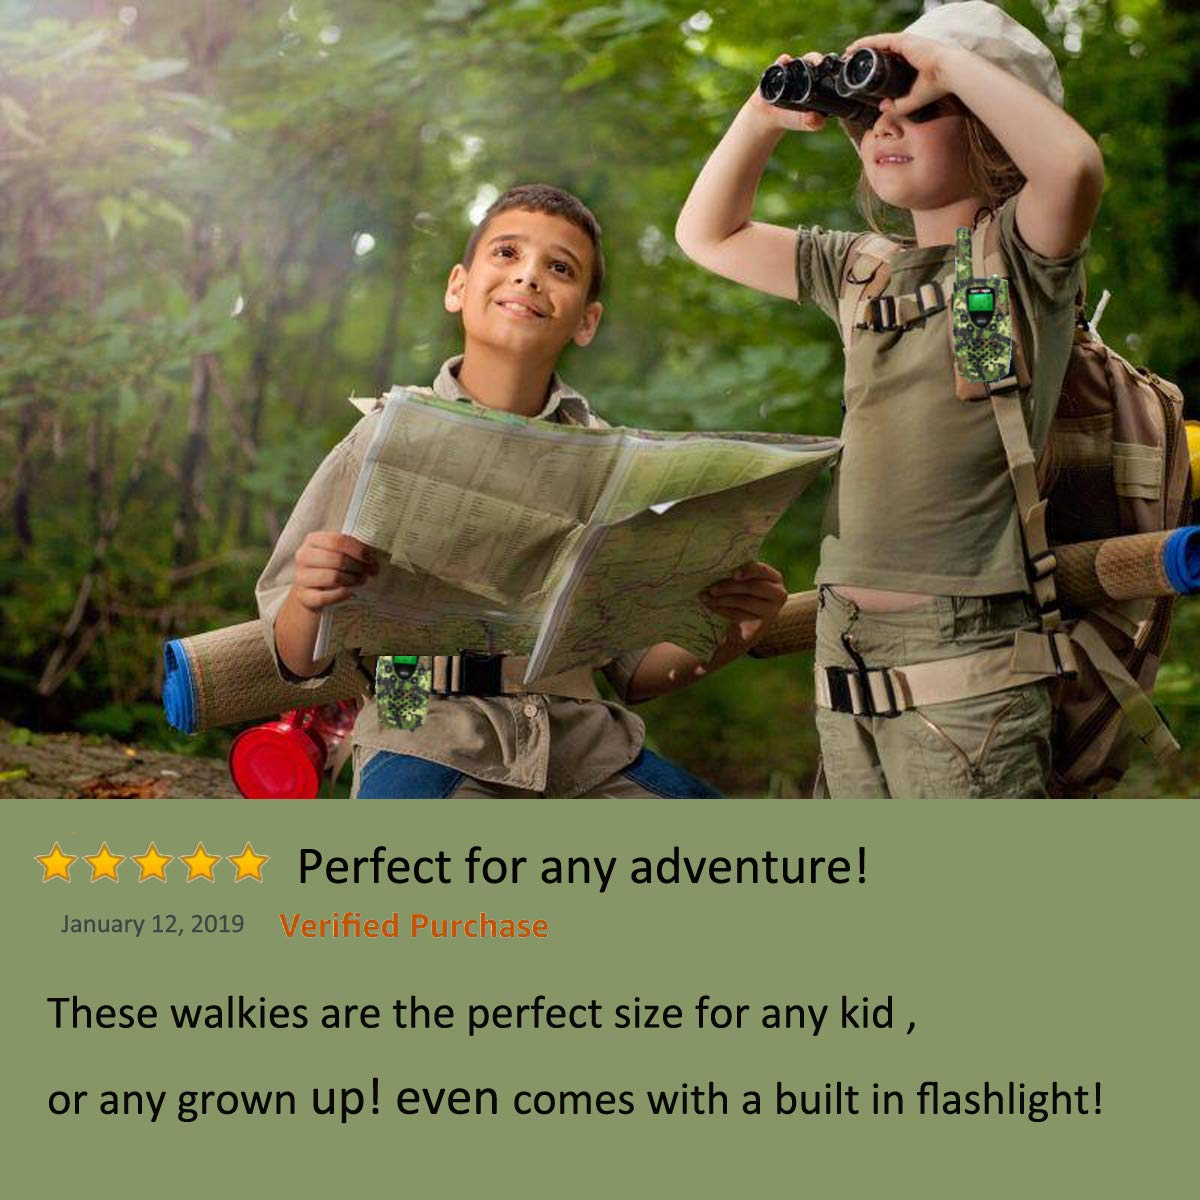 WES TAYIN Rechargeable Walkie Talkies for Kids, 4 Miles Kids Walkie Talkies with VOX Hands Free and LED Flashlight, Power Saving Two Way Radios Toys, Holiday Birthday for Kids by WES TAYIN (Image #5)